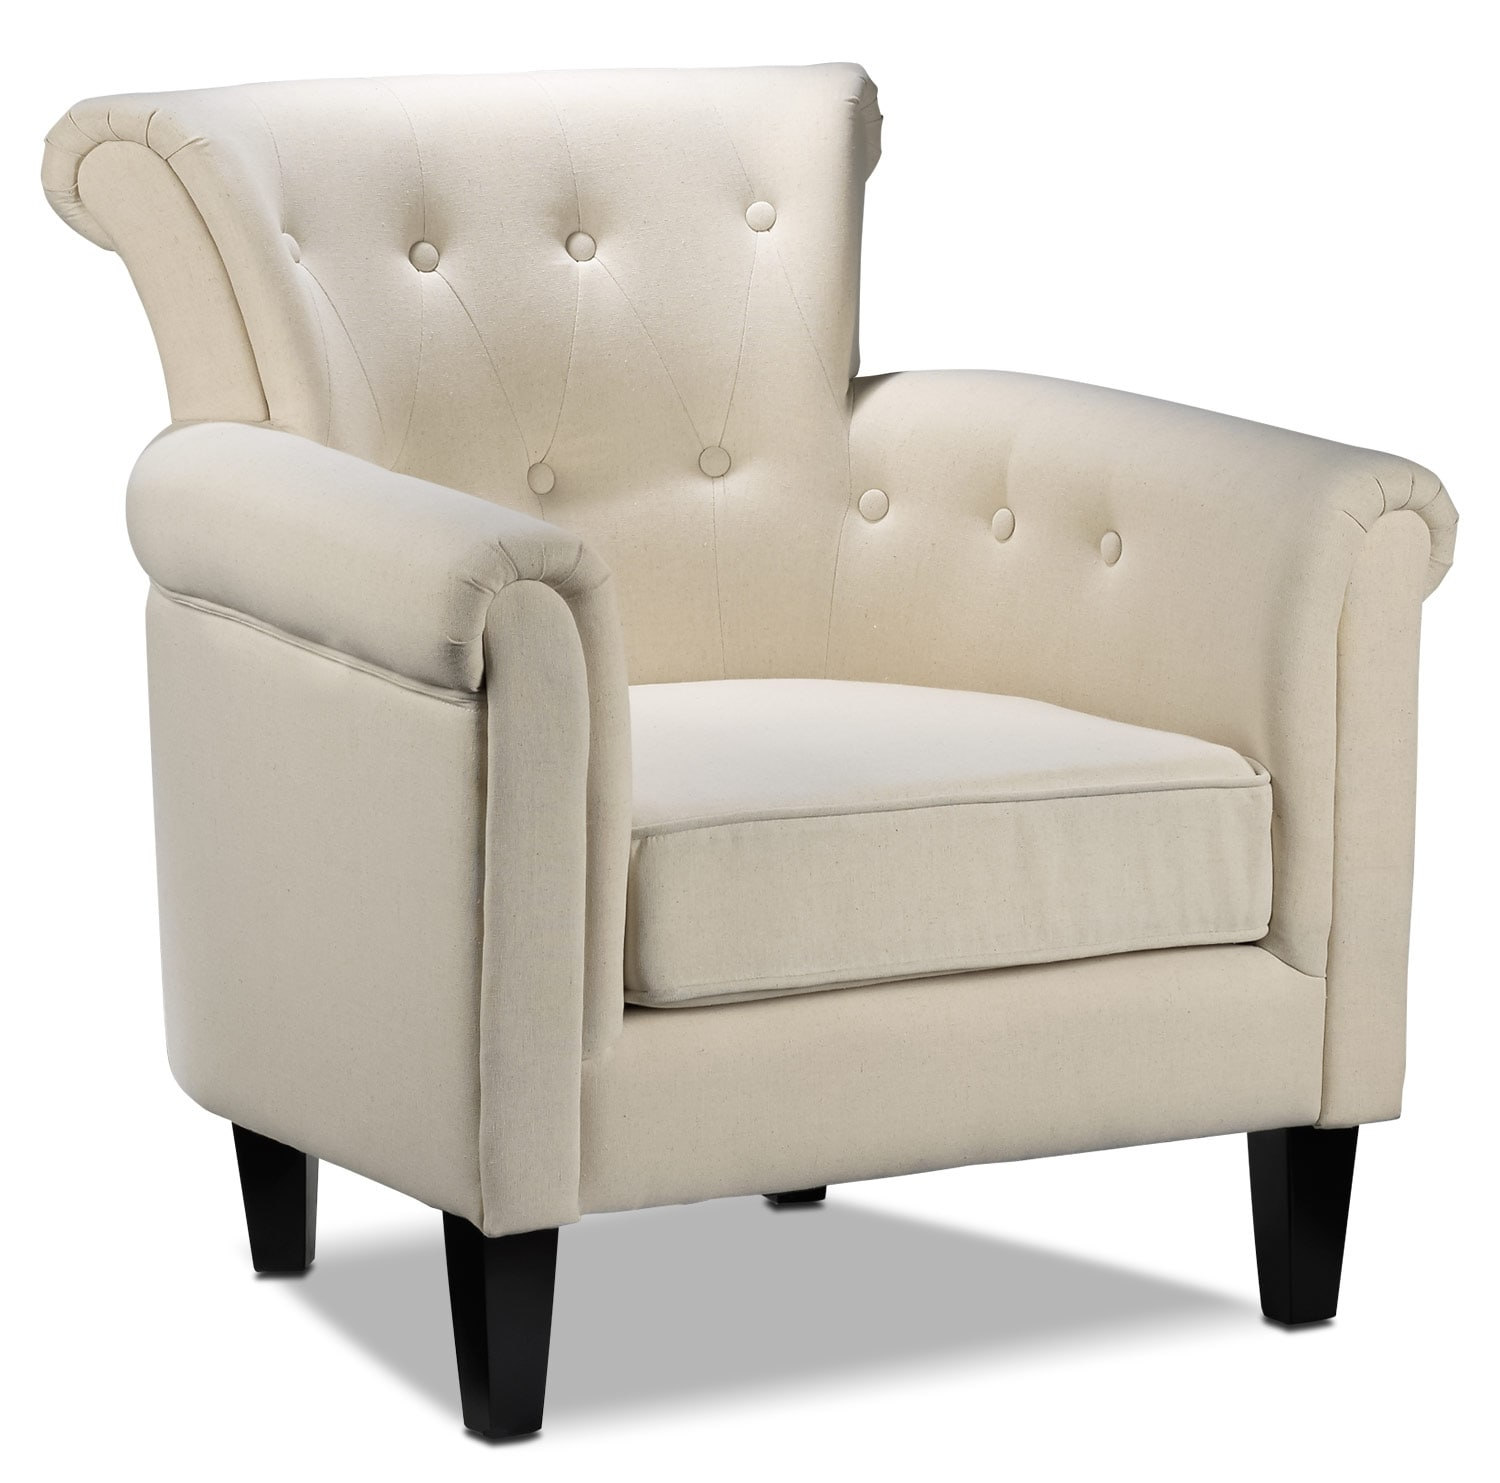 Laurel accent chair white leon 39 s for Living room accent chairs